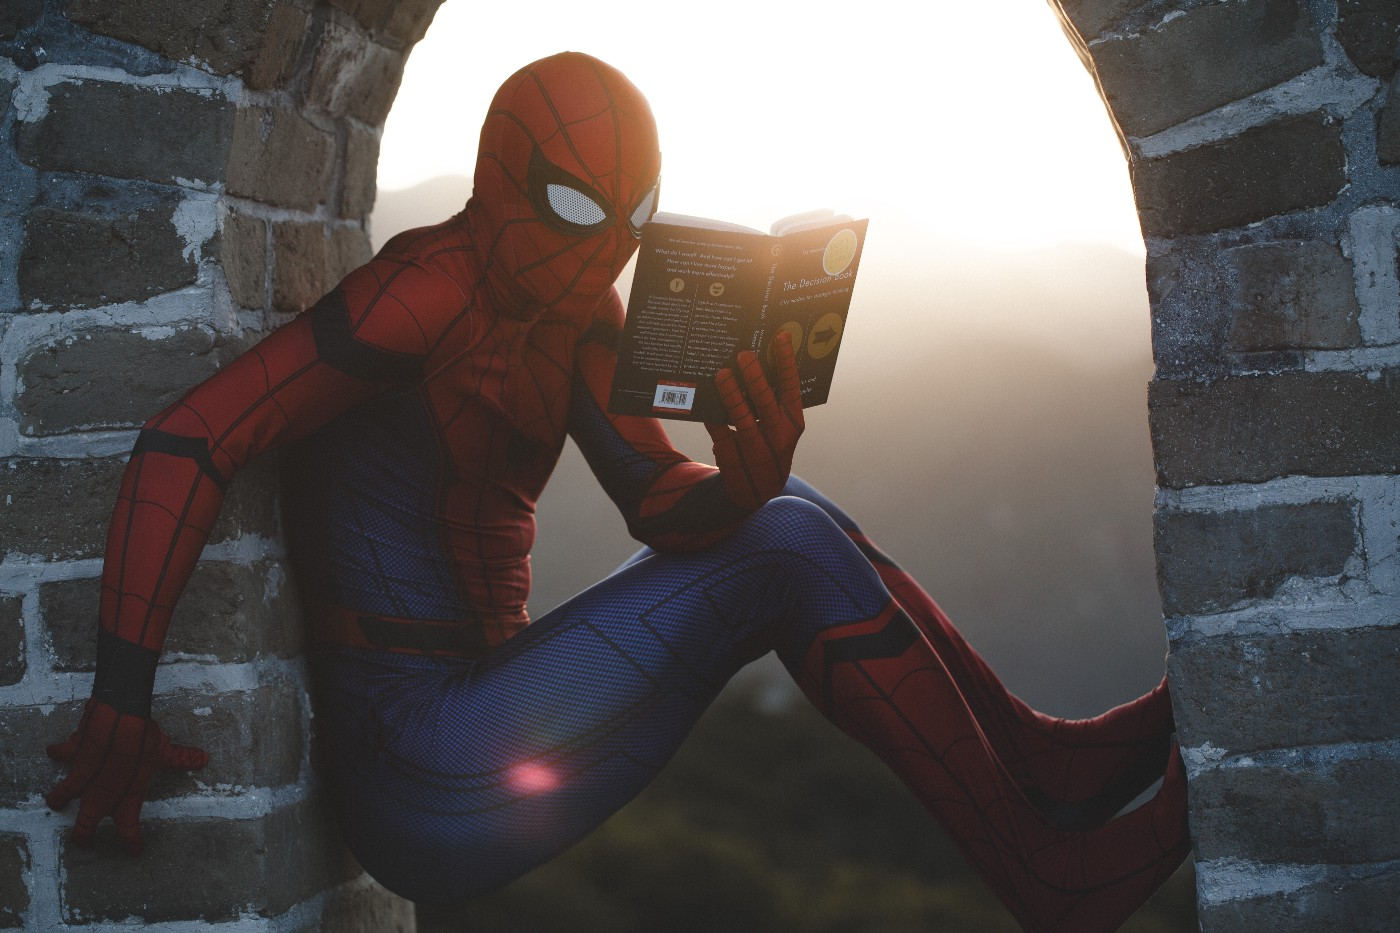 The image is that of superhero, spider man, sitting on wall reading a book.